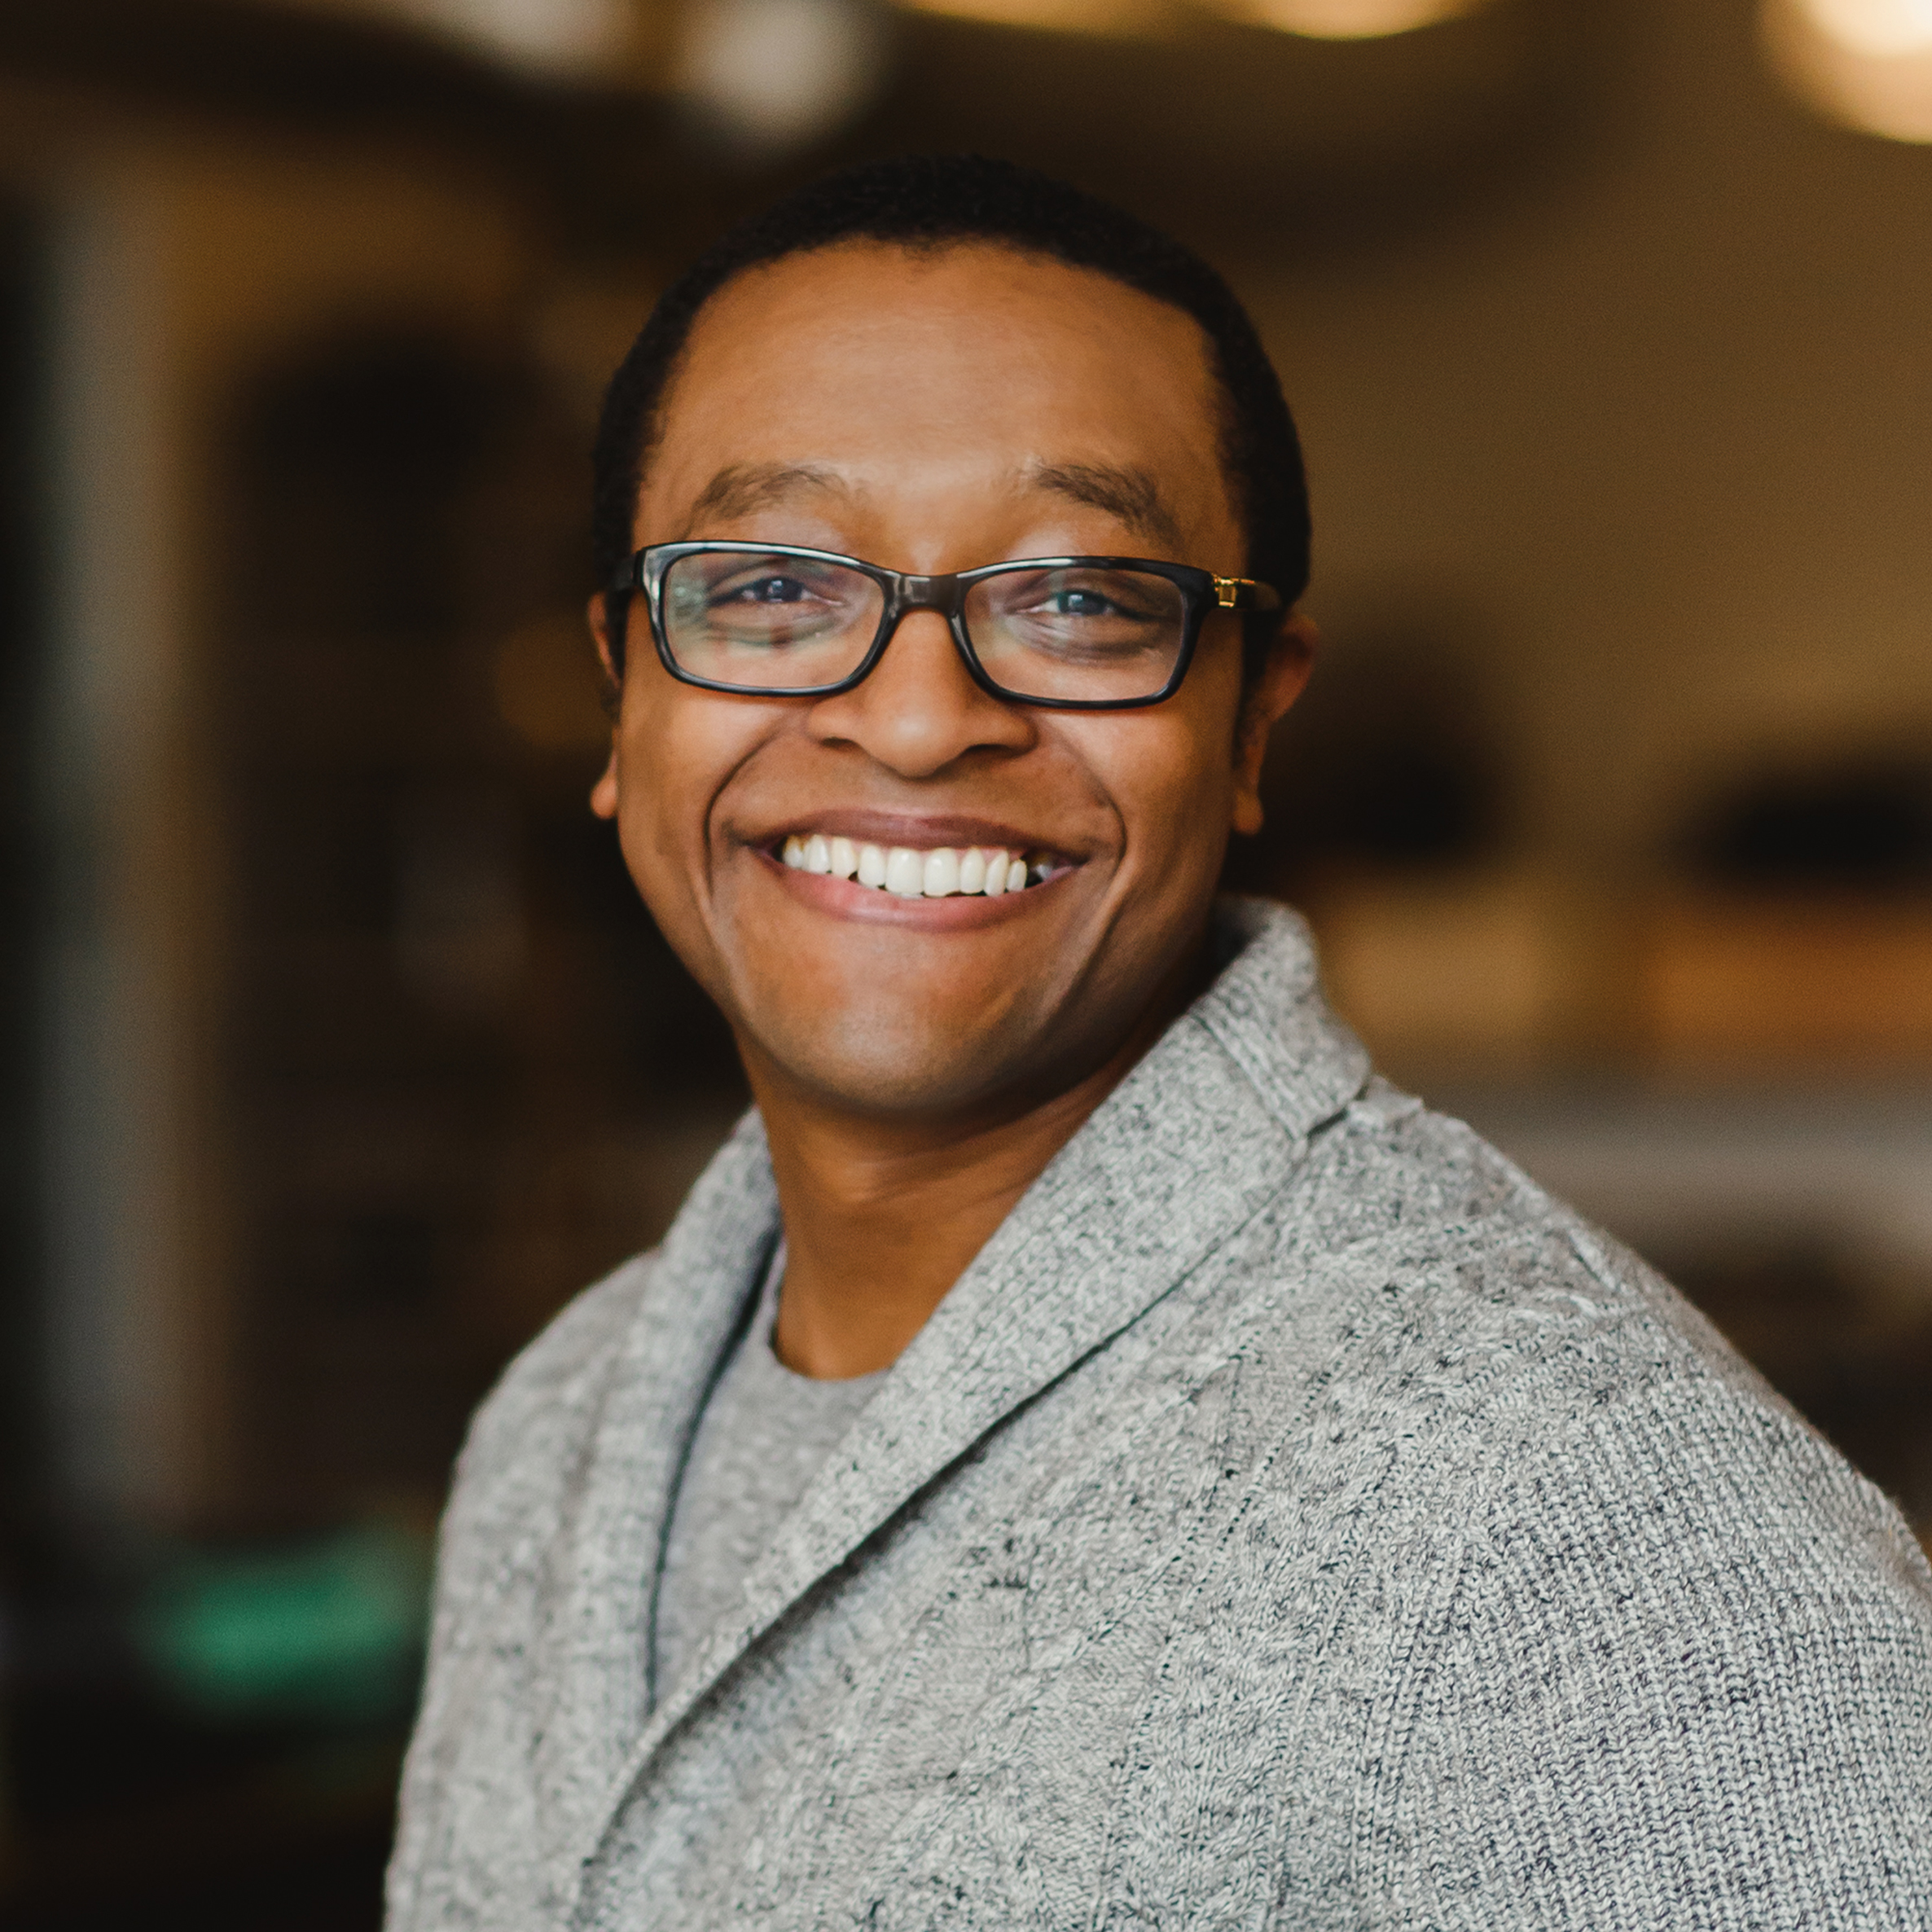 CHRIS GAITHER - Chris's first restaurant job was a means to an end—a way to pay his bills while attending Morehouse College in Atlanta, Georgia. He immediately loved the challenge of serving tables—the fast pace, the attention to detail, and the demand to continue to learn about food and wine. His passion and curiosity for wine led him to apply for—and receive—a coveted wine internship at The French Laundry. Here, Chris went from having a mere interest in wine to being devoted to wine. He moved to San Francisco to work as a Sommelier at Spruce and from there went on to be the Wine Director at Restaurant Gary Danko.Despite the long days at work and a girlfriend who wanted his attention (Rebecca), he continued to set aside time for his studies. He is a Master Sommelier candidate and has passed two out of three sections of the exam. He hopes to pass the exam in full in 2019.Chris's accolades are numerous and include: 2012 Best New Sommeliers (Wine and Spirits Magazine); 2013 Top New Somm Competition Winner (Guild of Sommeliers); 2013 Zagat 30 Under 30. He is currently the Wine Director at Octavia in Pacific Heights.When he is not at work, Chris enjoys dancing, running, and making silly faces with his toddler.